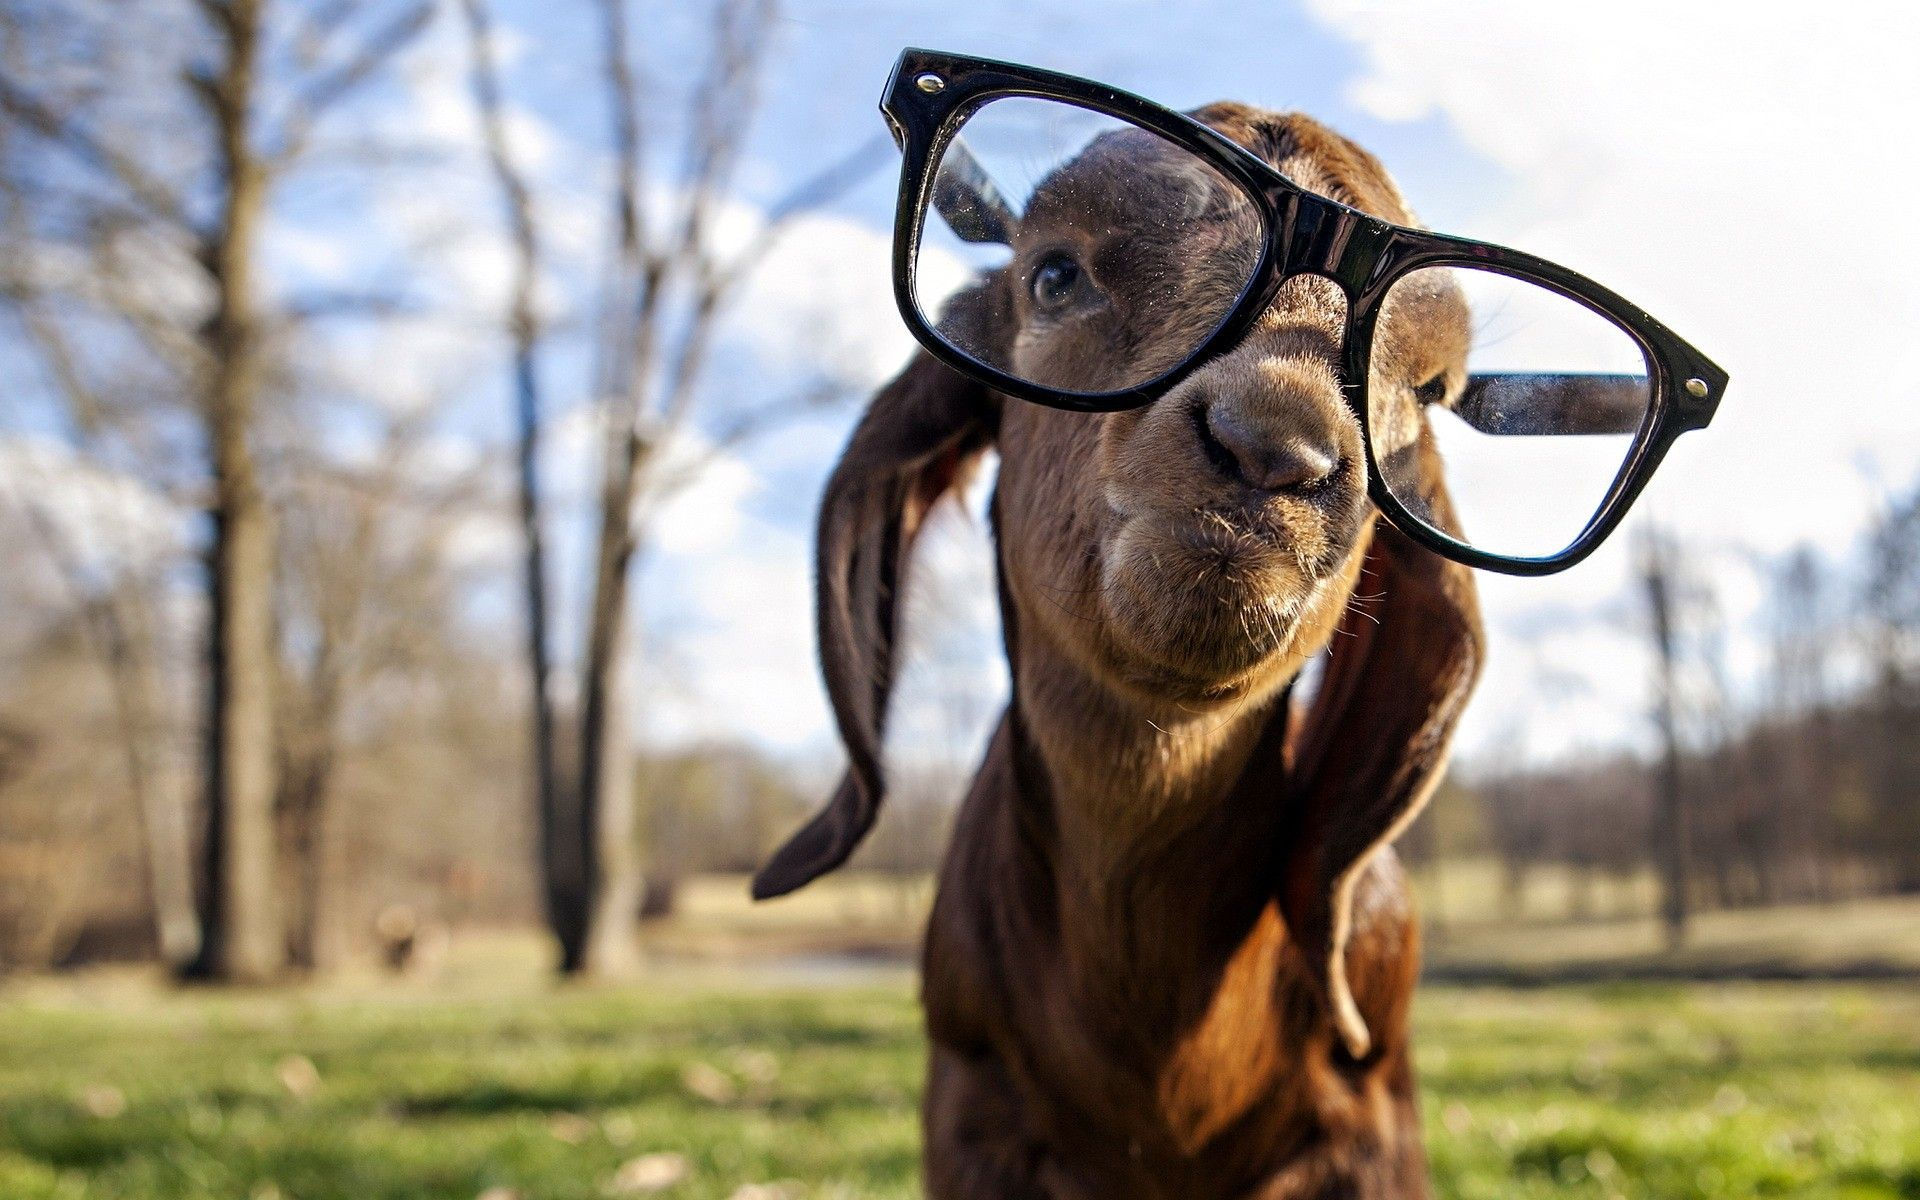 Skrillex Animals Glasses Goats Wallpaper 2740610 Wallbase Cc Goats Funny Cute Goats Funny Animals,Hacks Space Saving Ideas For Small Apartments